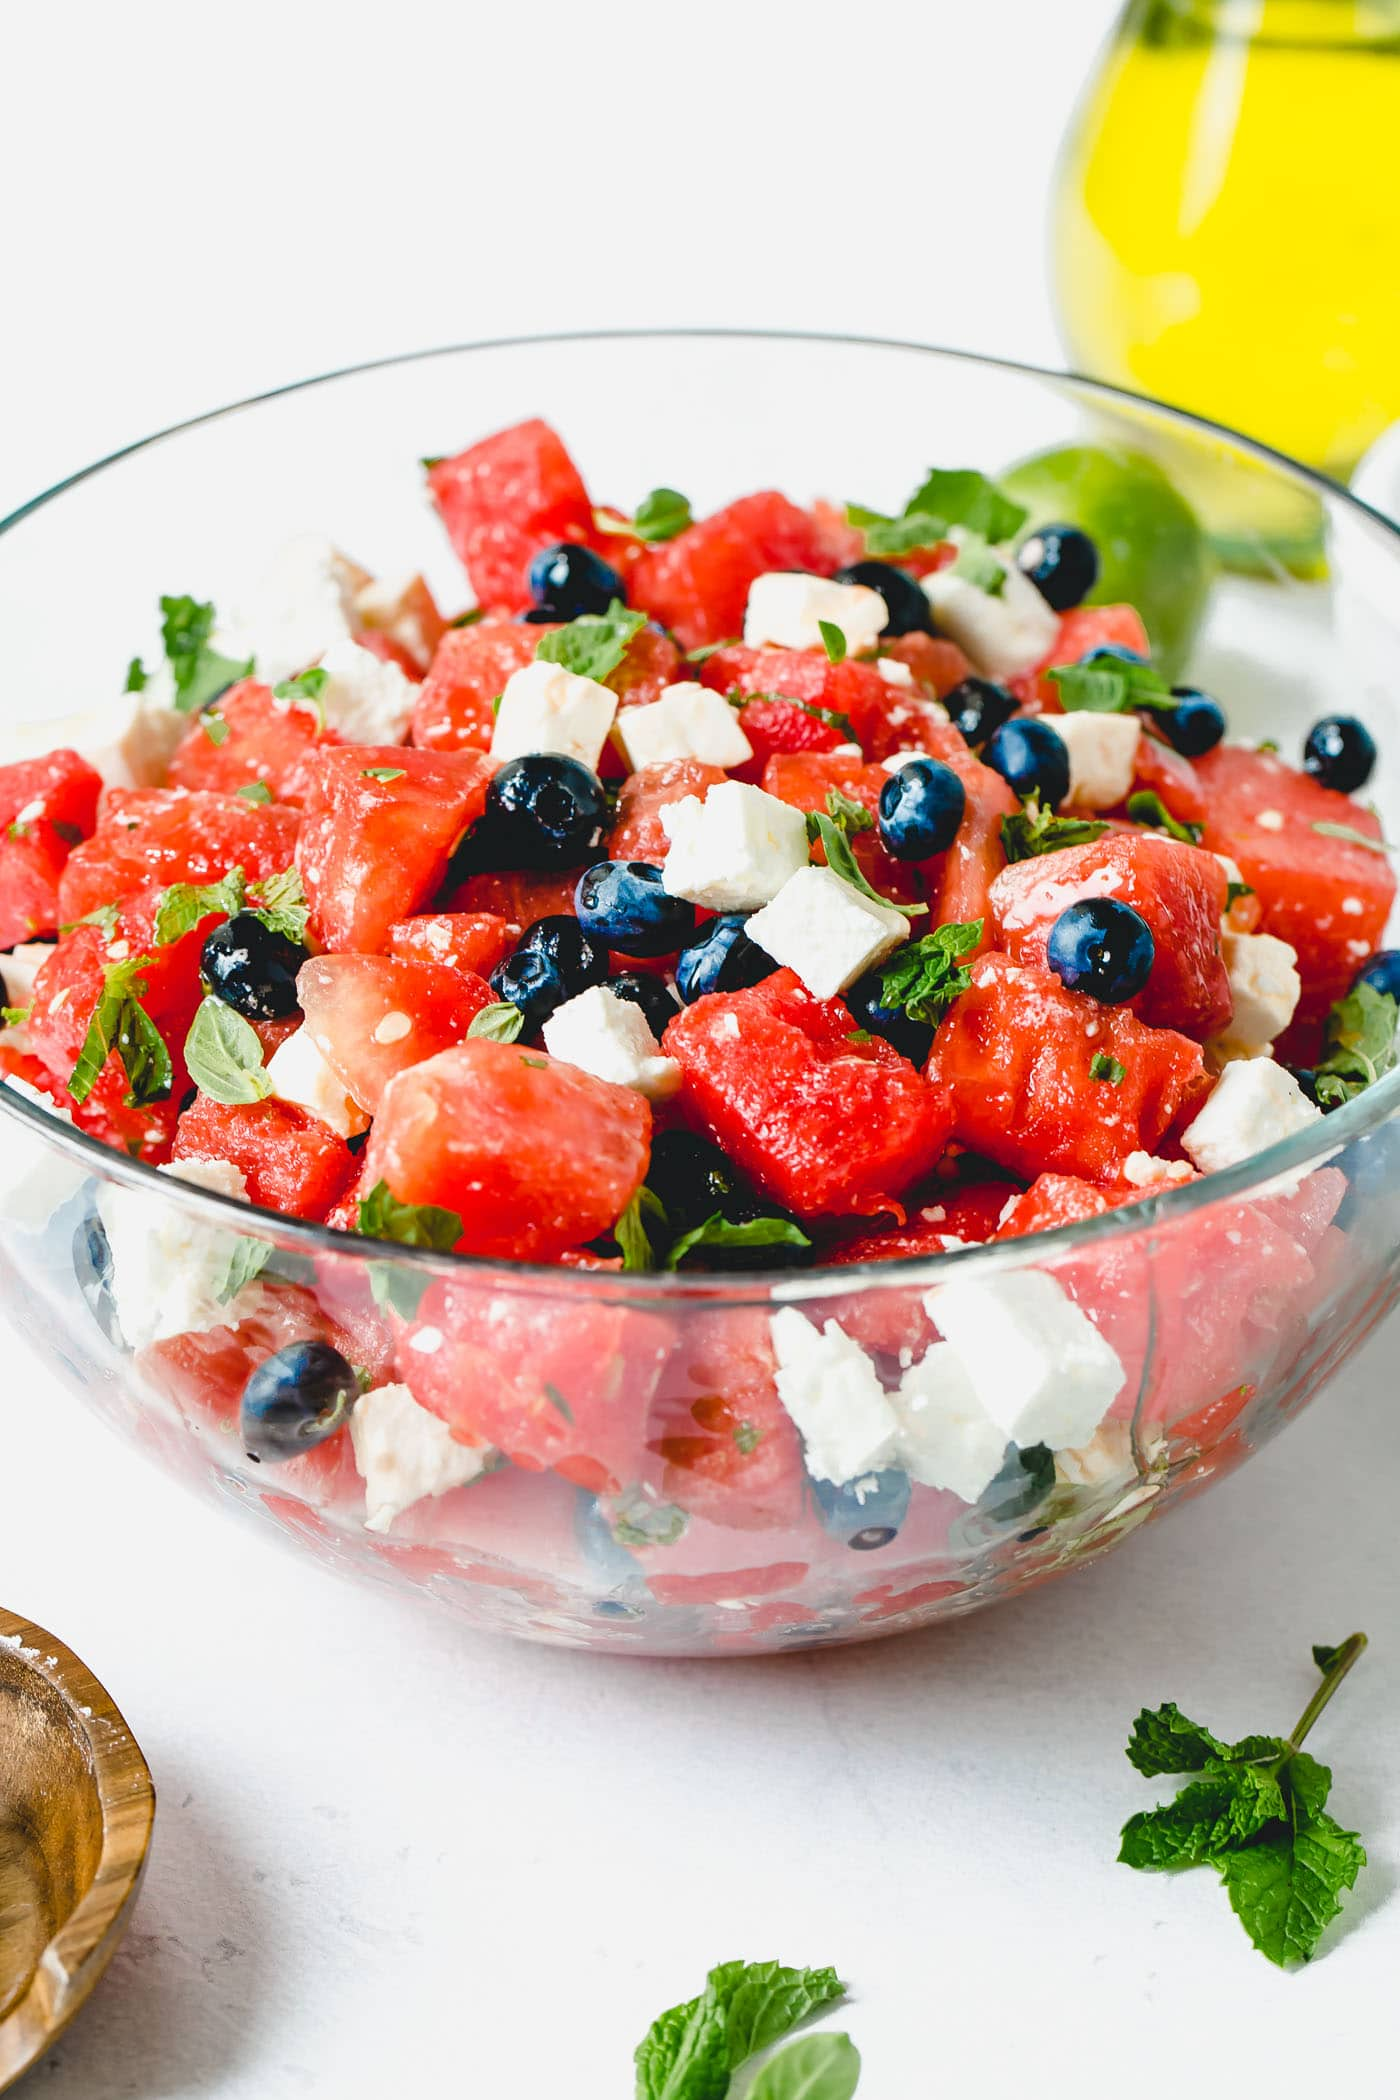 Blueberry feta watermelon salad in a glass serving bowl. There are fresh blueberries, cubes of watermelon, and cubes of feta cheese mixed with a few fresh basil and mint leaves.